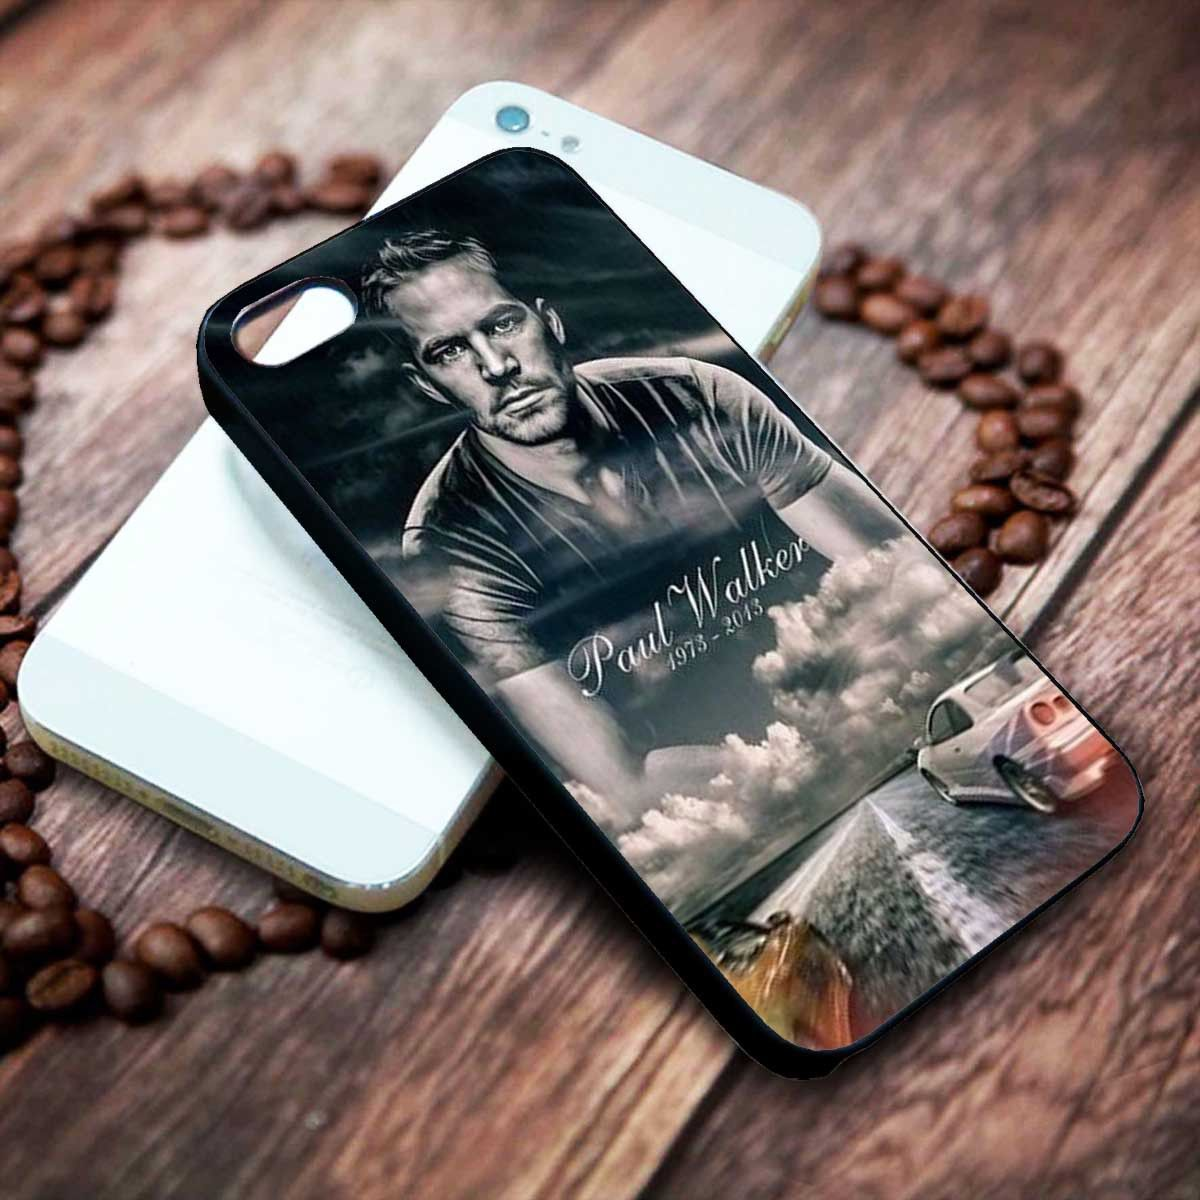 Paul Walker | Actor | Movie | custom case for iphone 4/4s 5 5s 5c 6 6plus case and samsung galaxy s3 s4 s5 s6 case - RSBLVD